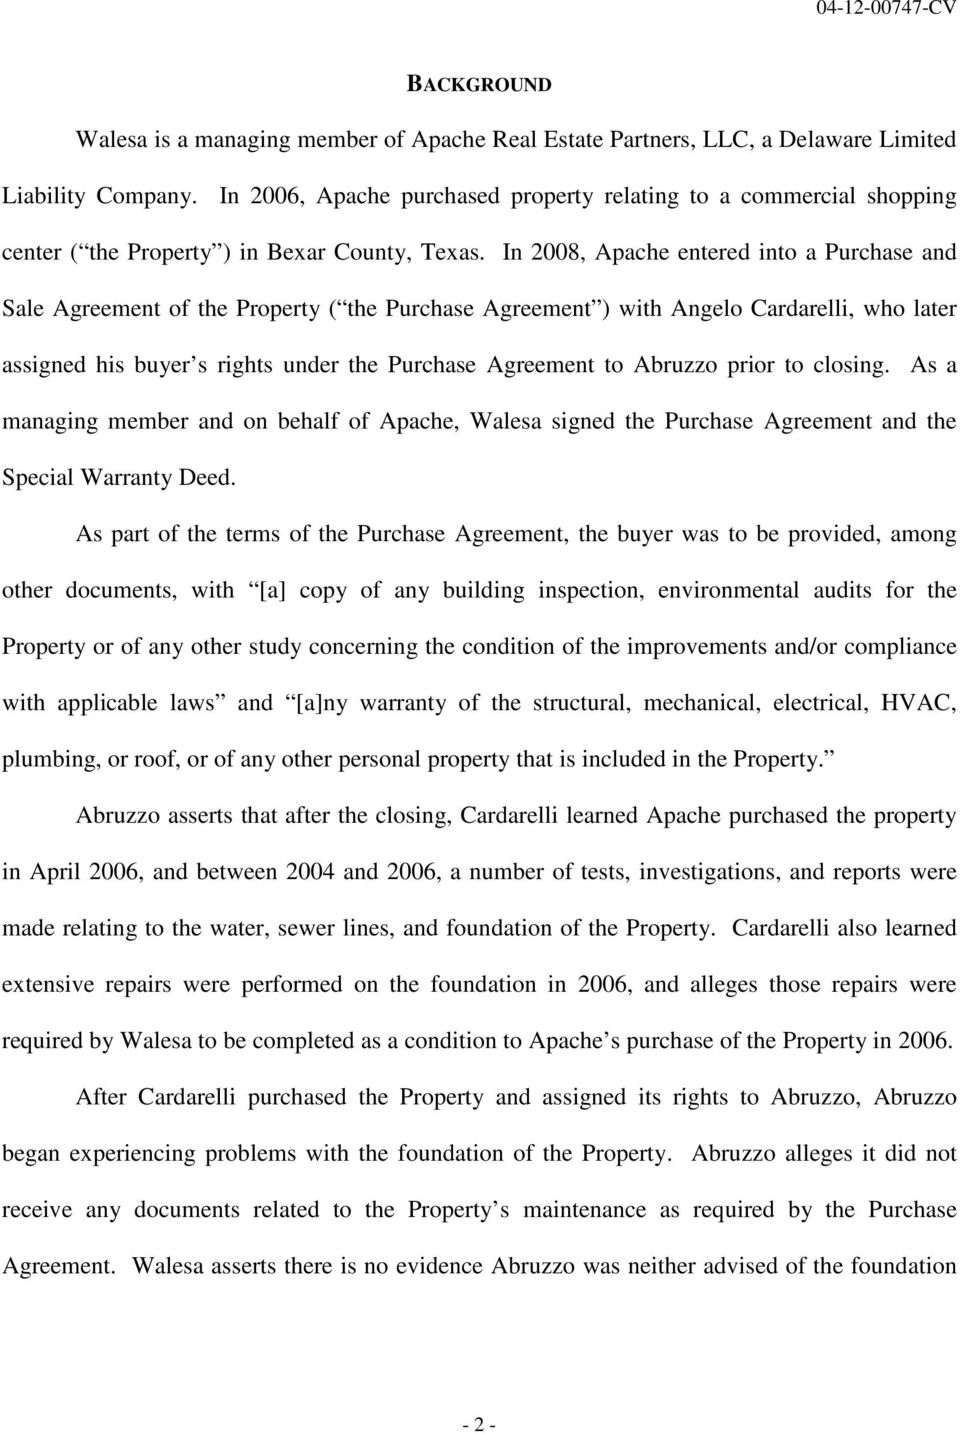 In 2008, Apache entered into a Purchase and Sale Agreement of the Property ( the Purchase Agreement ) with Angelo Cardarelli, who later assigned his buyer s rights under the Purchase Agreement to